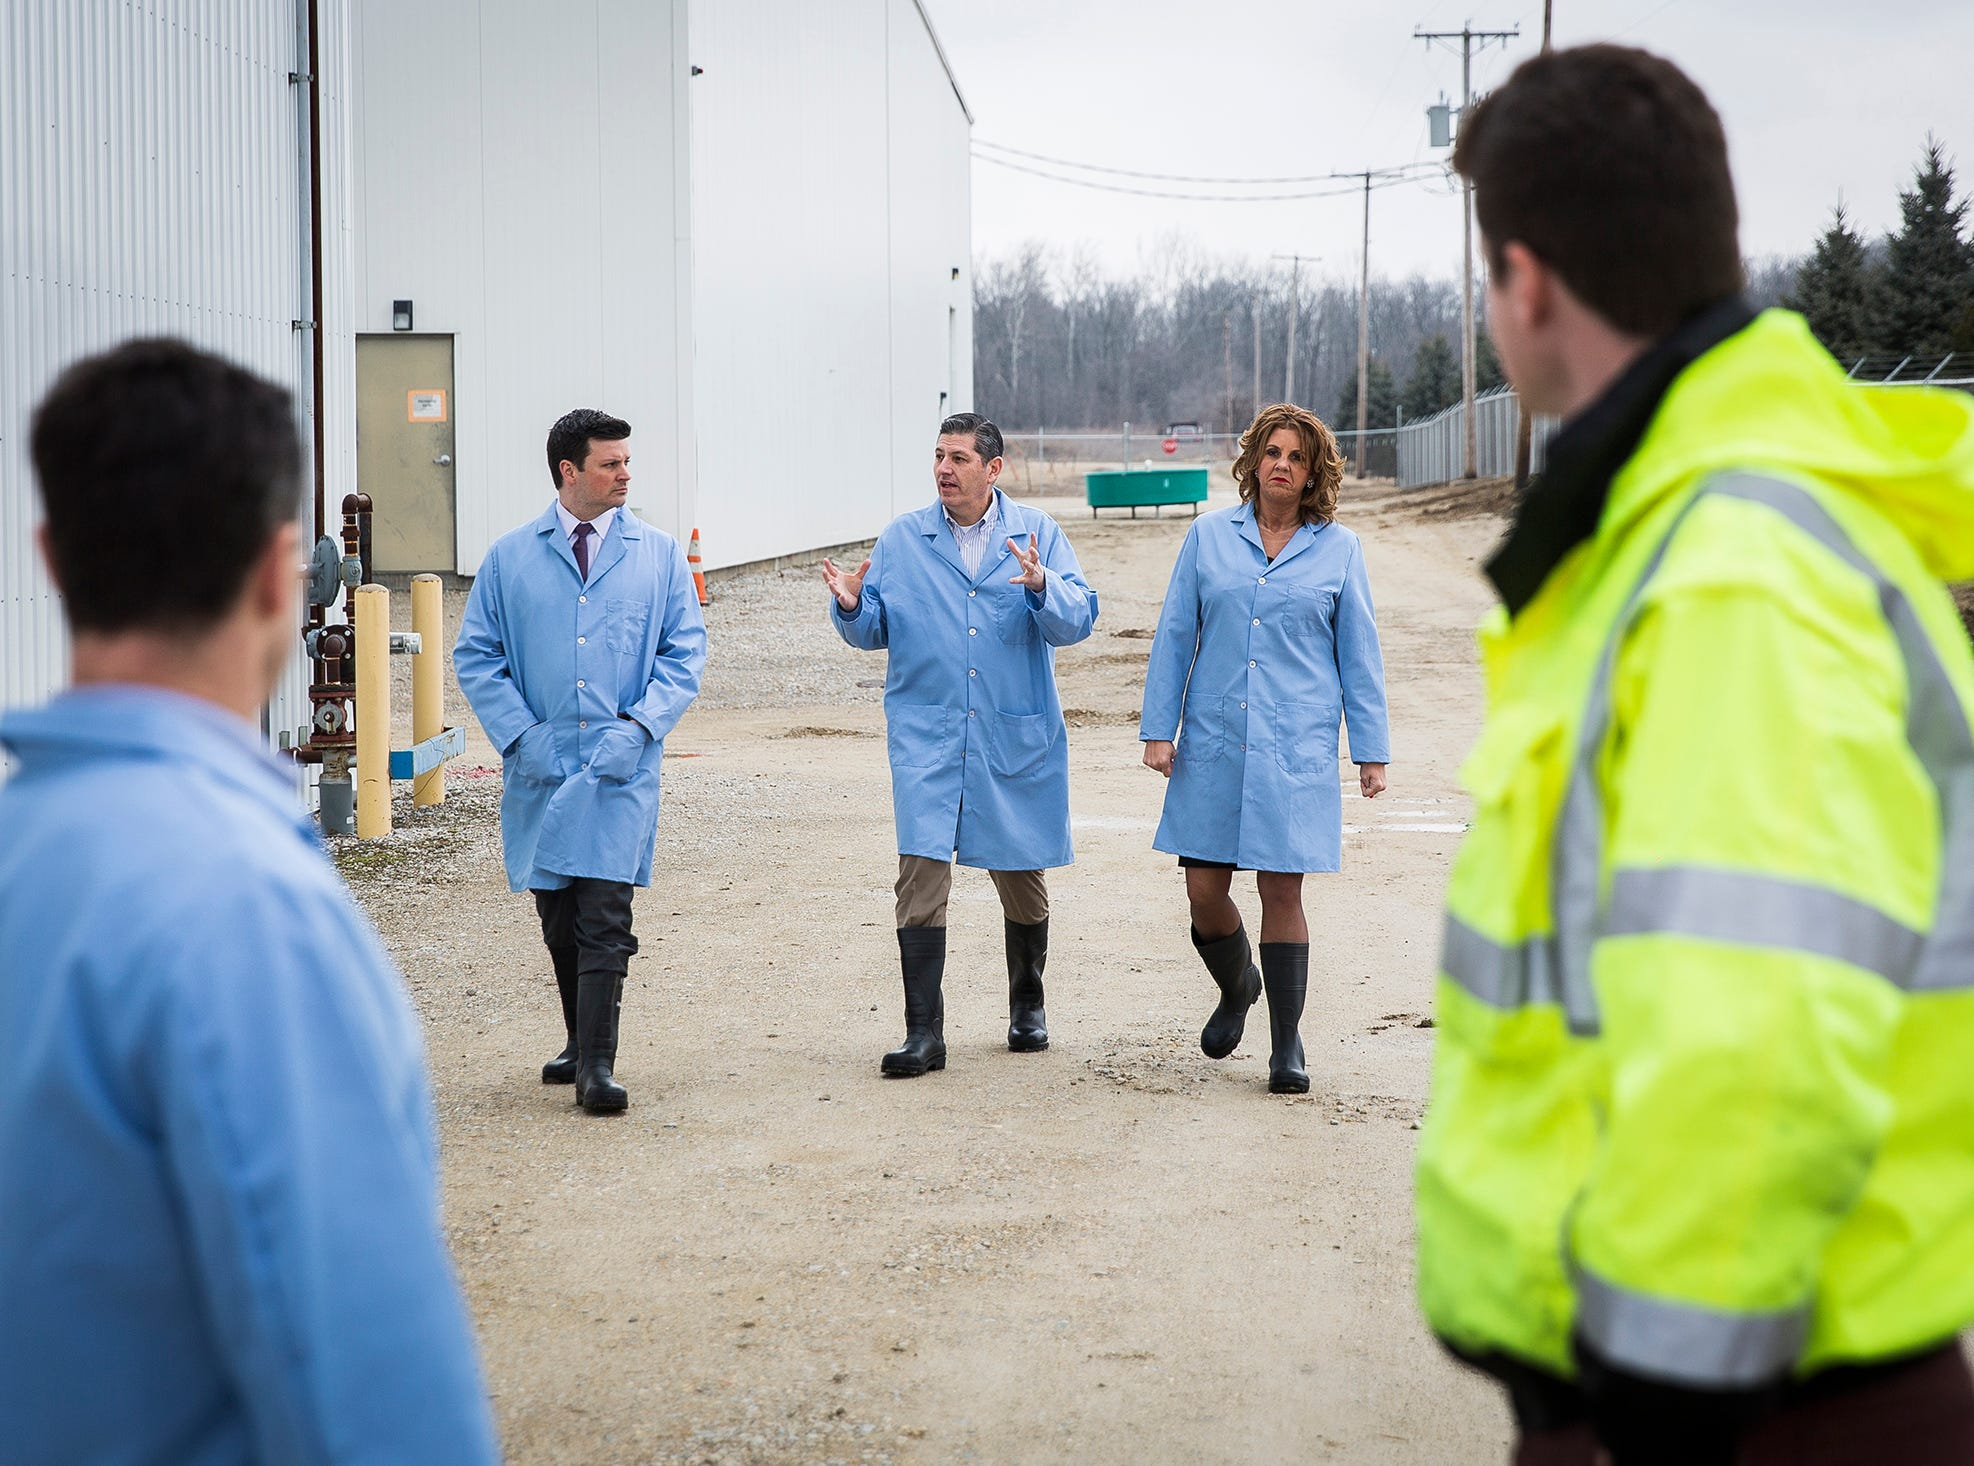 Sen. Todd Young toured the AquaBounty facility where an FDA ban on genetically modified salmon was recently lifted.